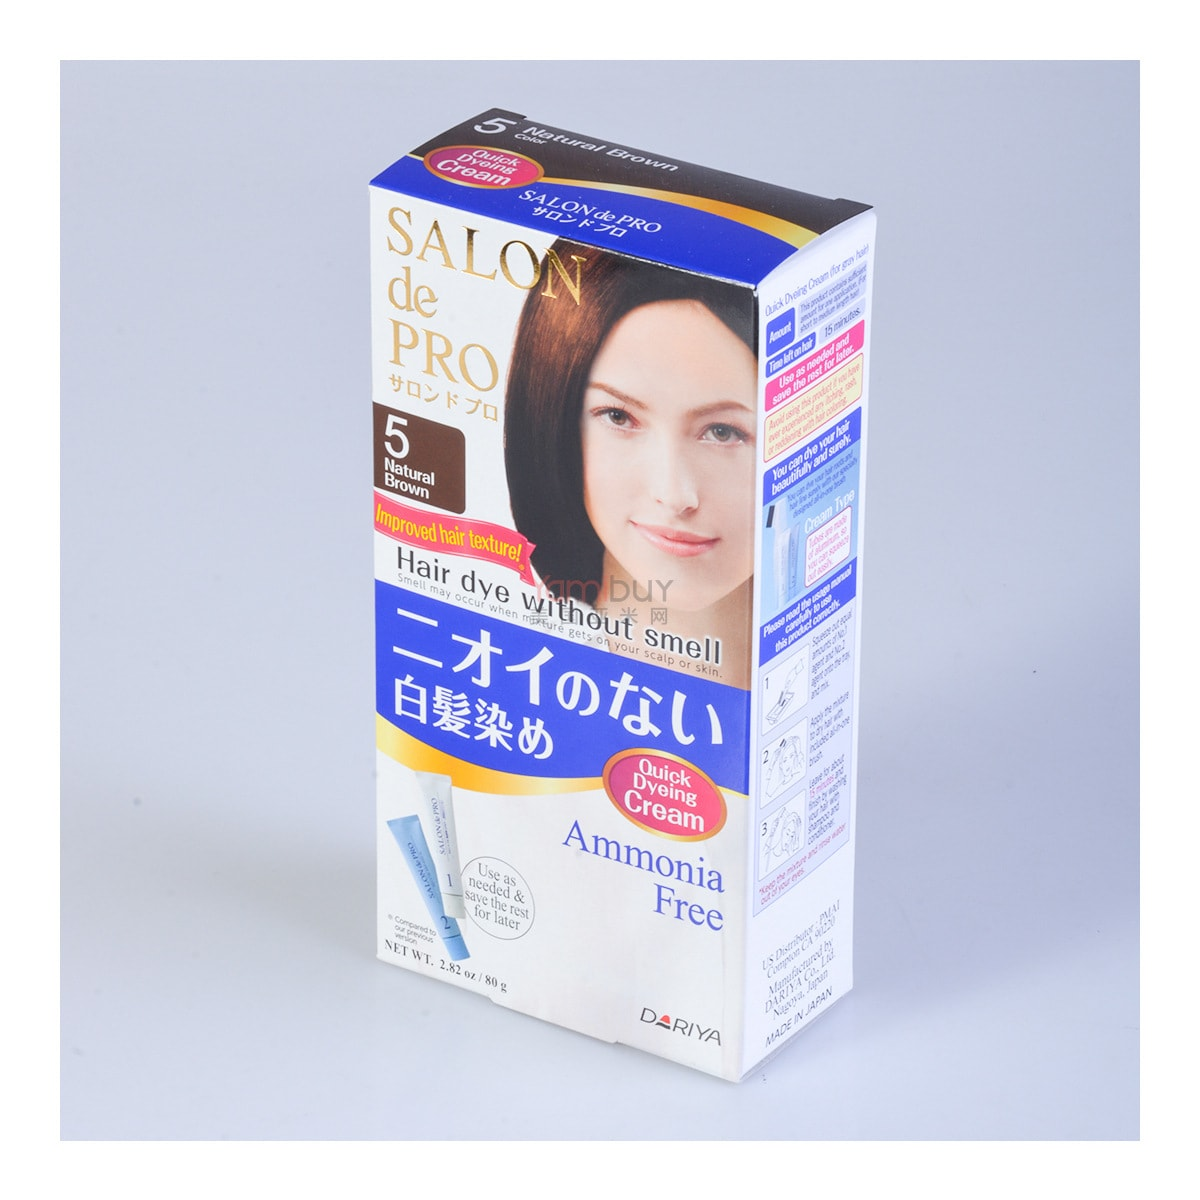 DARIYA SALON DE PRO Hair Dye without Smell 05 Natural Brown 80g